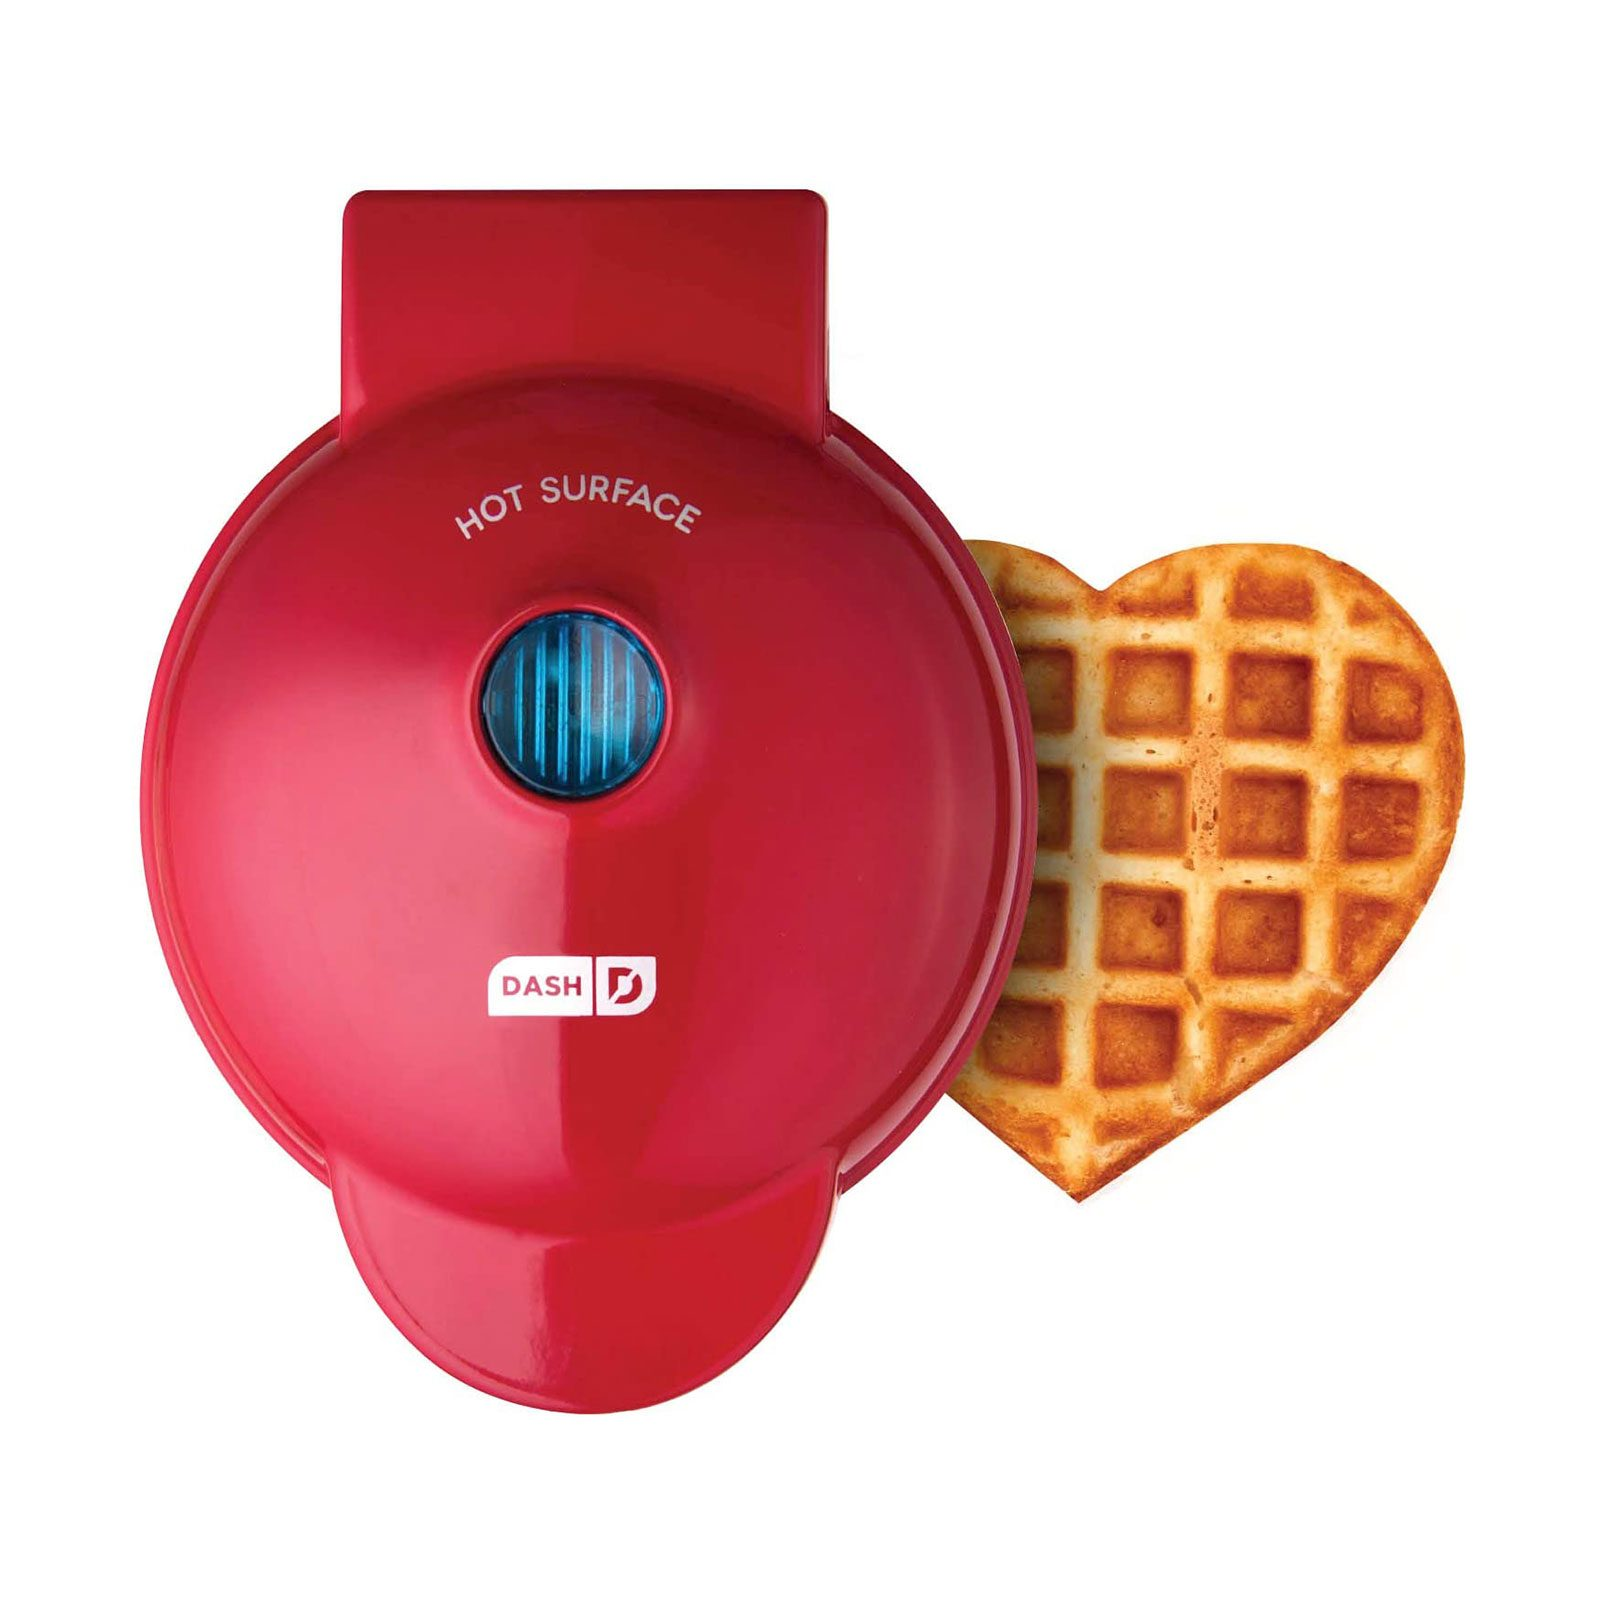 For your brunch buddy:Dash Mini Waffle Maker